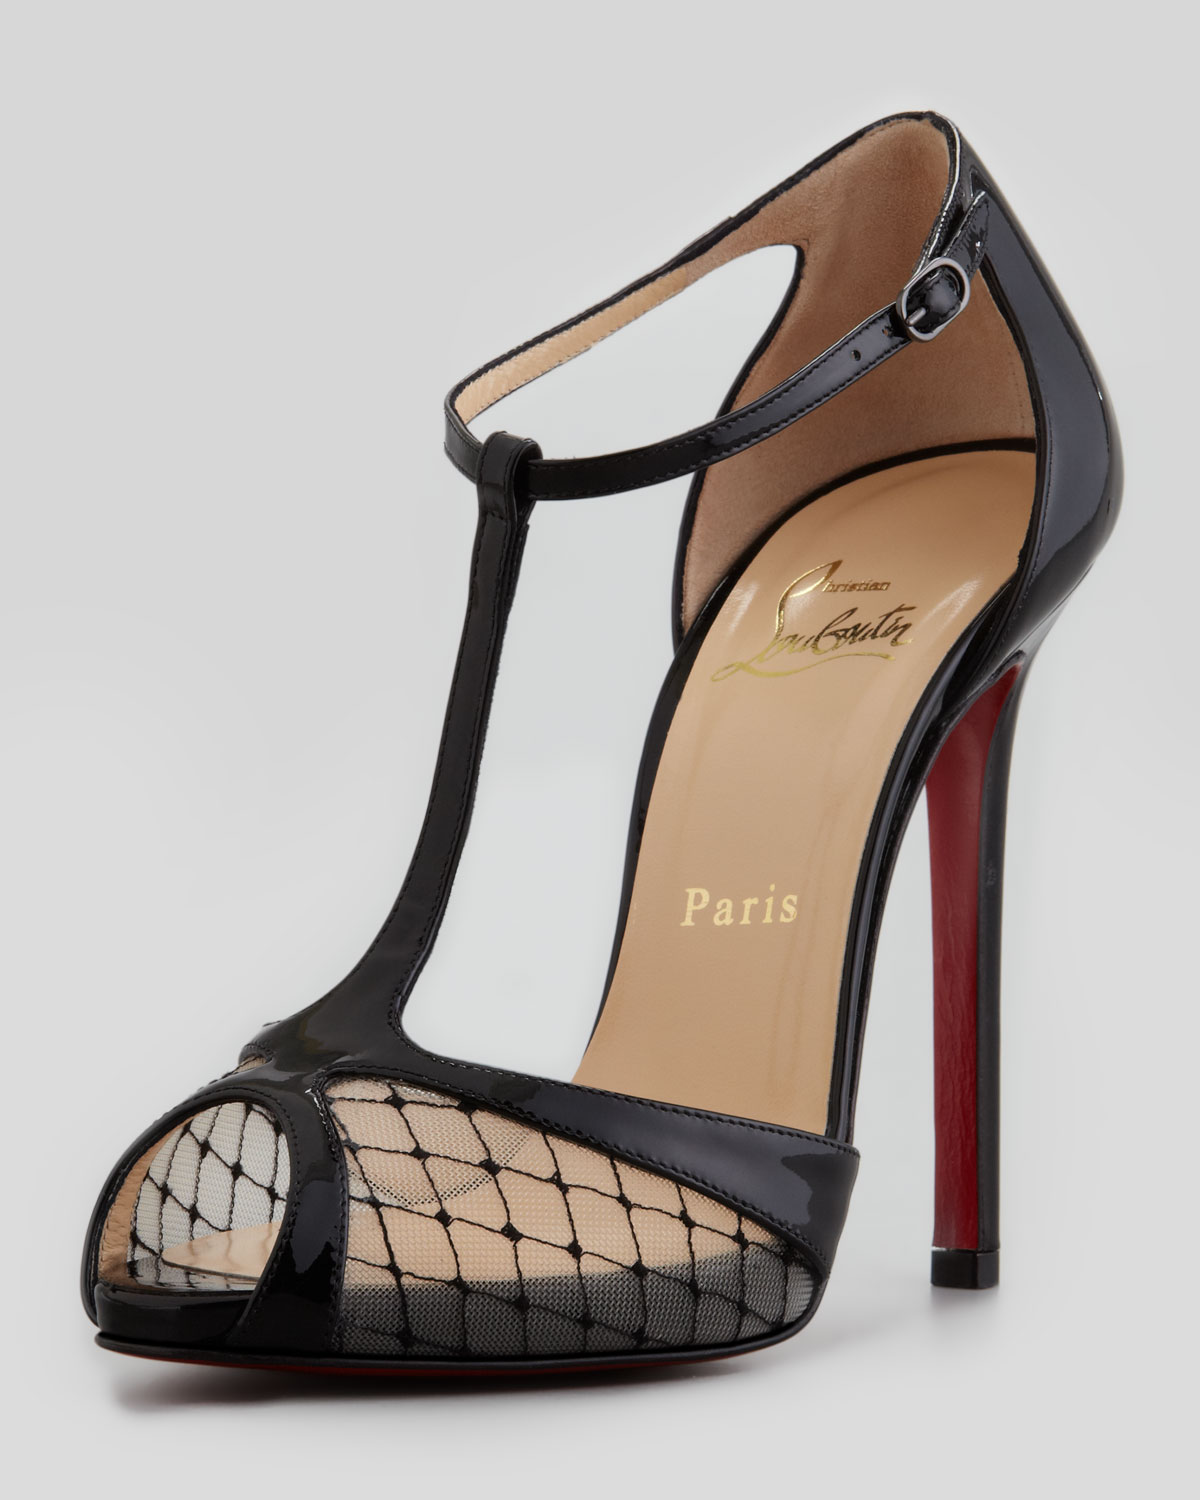 Christian Louboutin Straw Pumps Louboutin Trainers